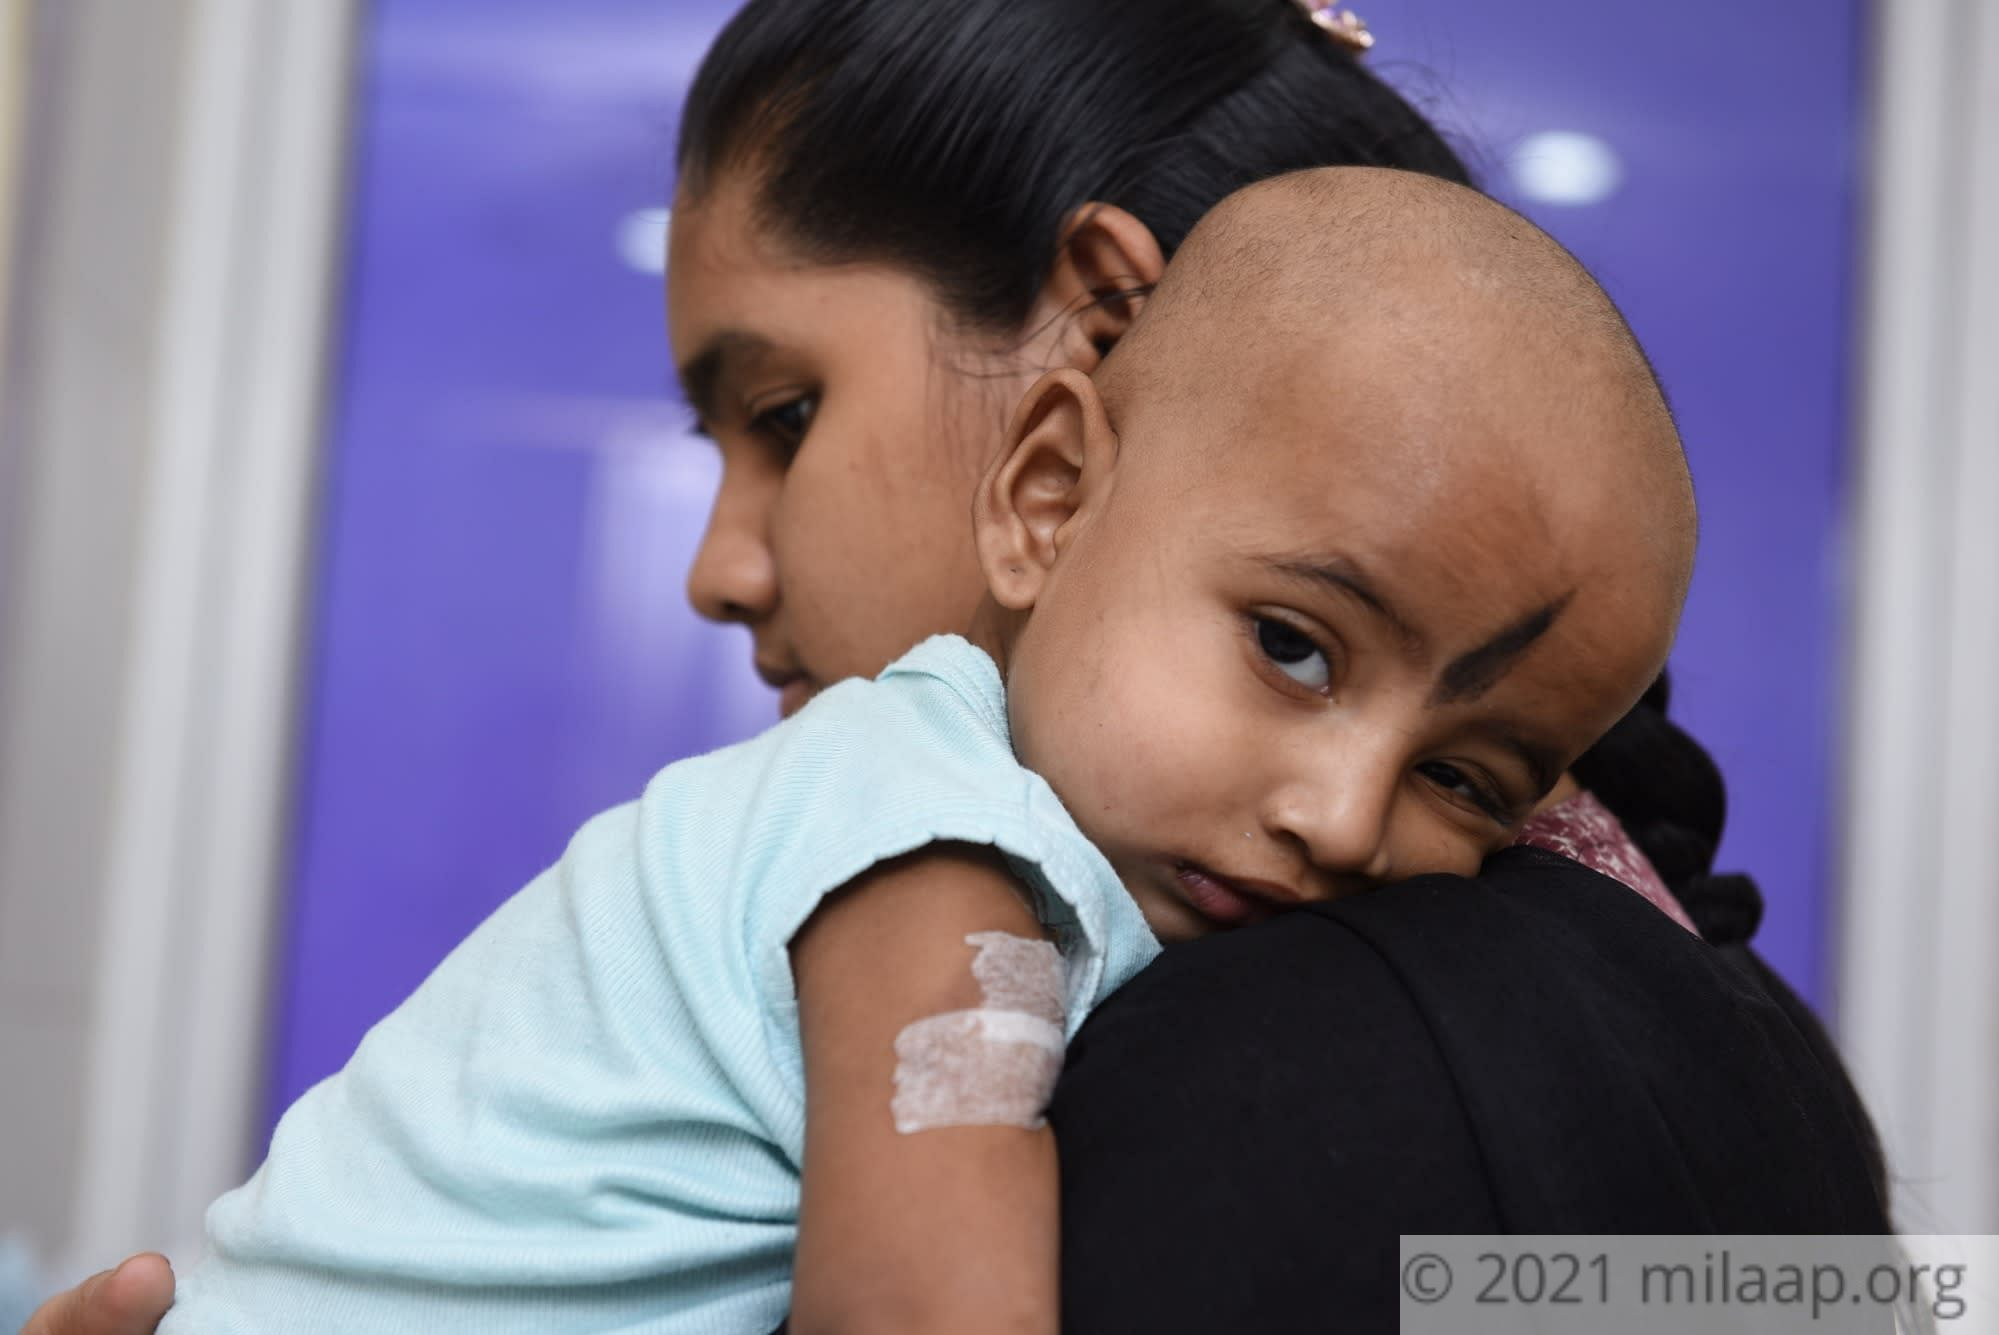 Sri visaagan   coimbatore cancer foundation   gknmh 1 qcozmr 1584415579